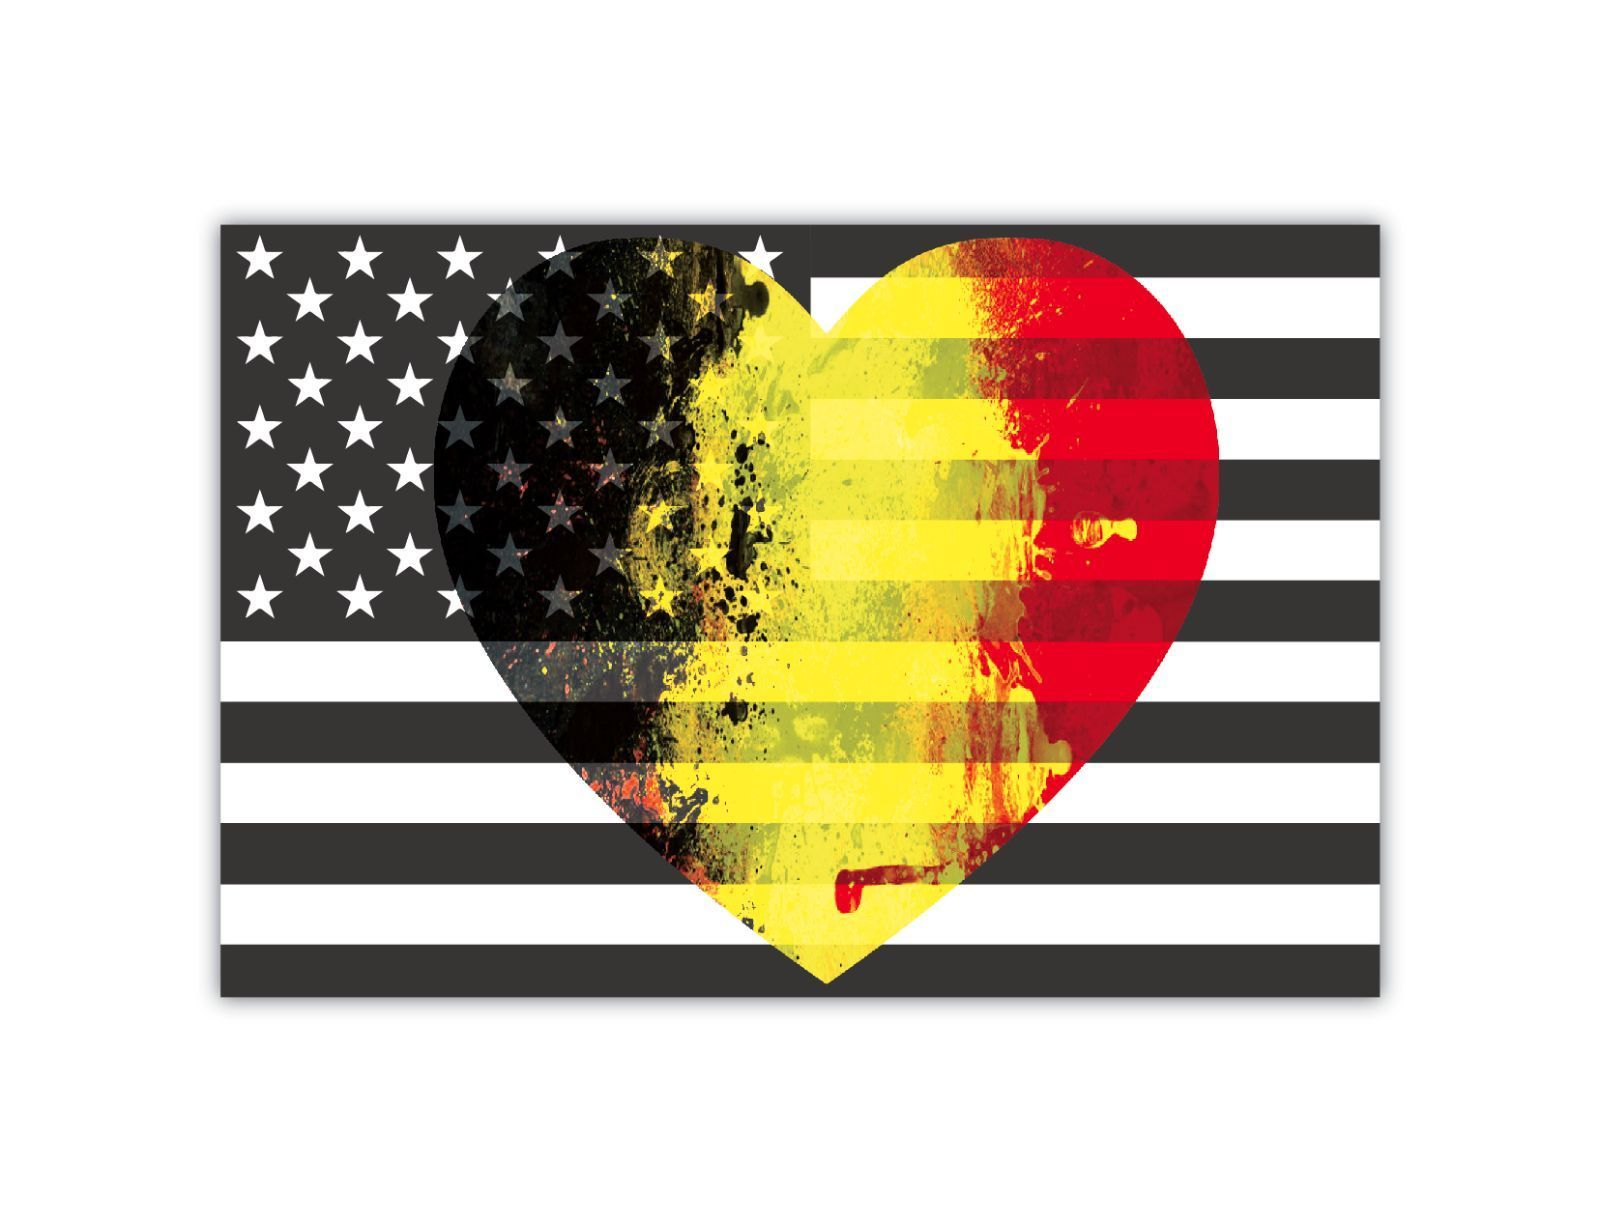 B/W American Flag with Belgian Heart Flag Car Magnet 2 Pack 4 inch x 6 inch